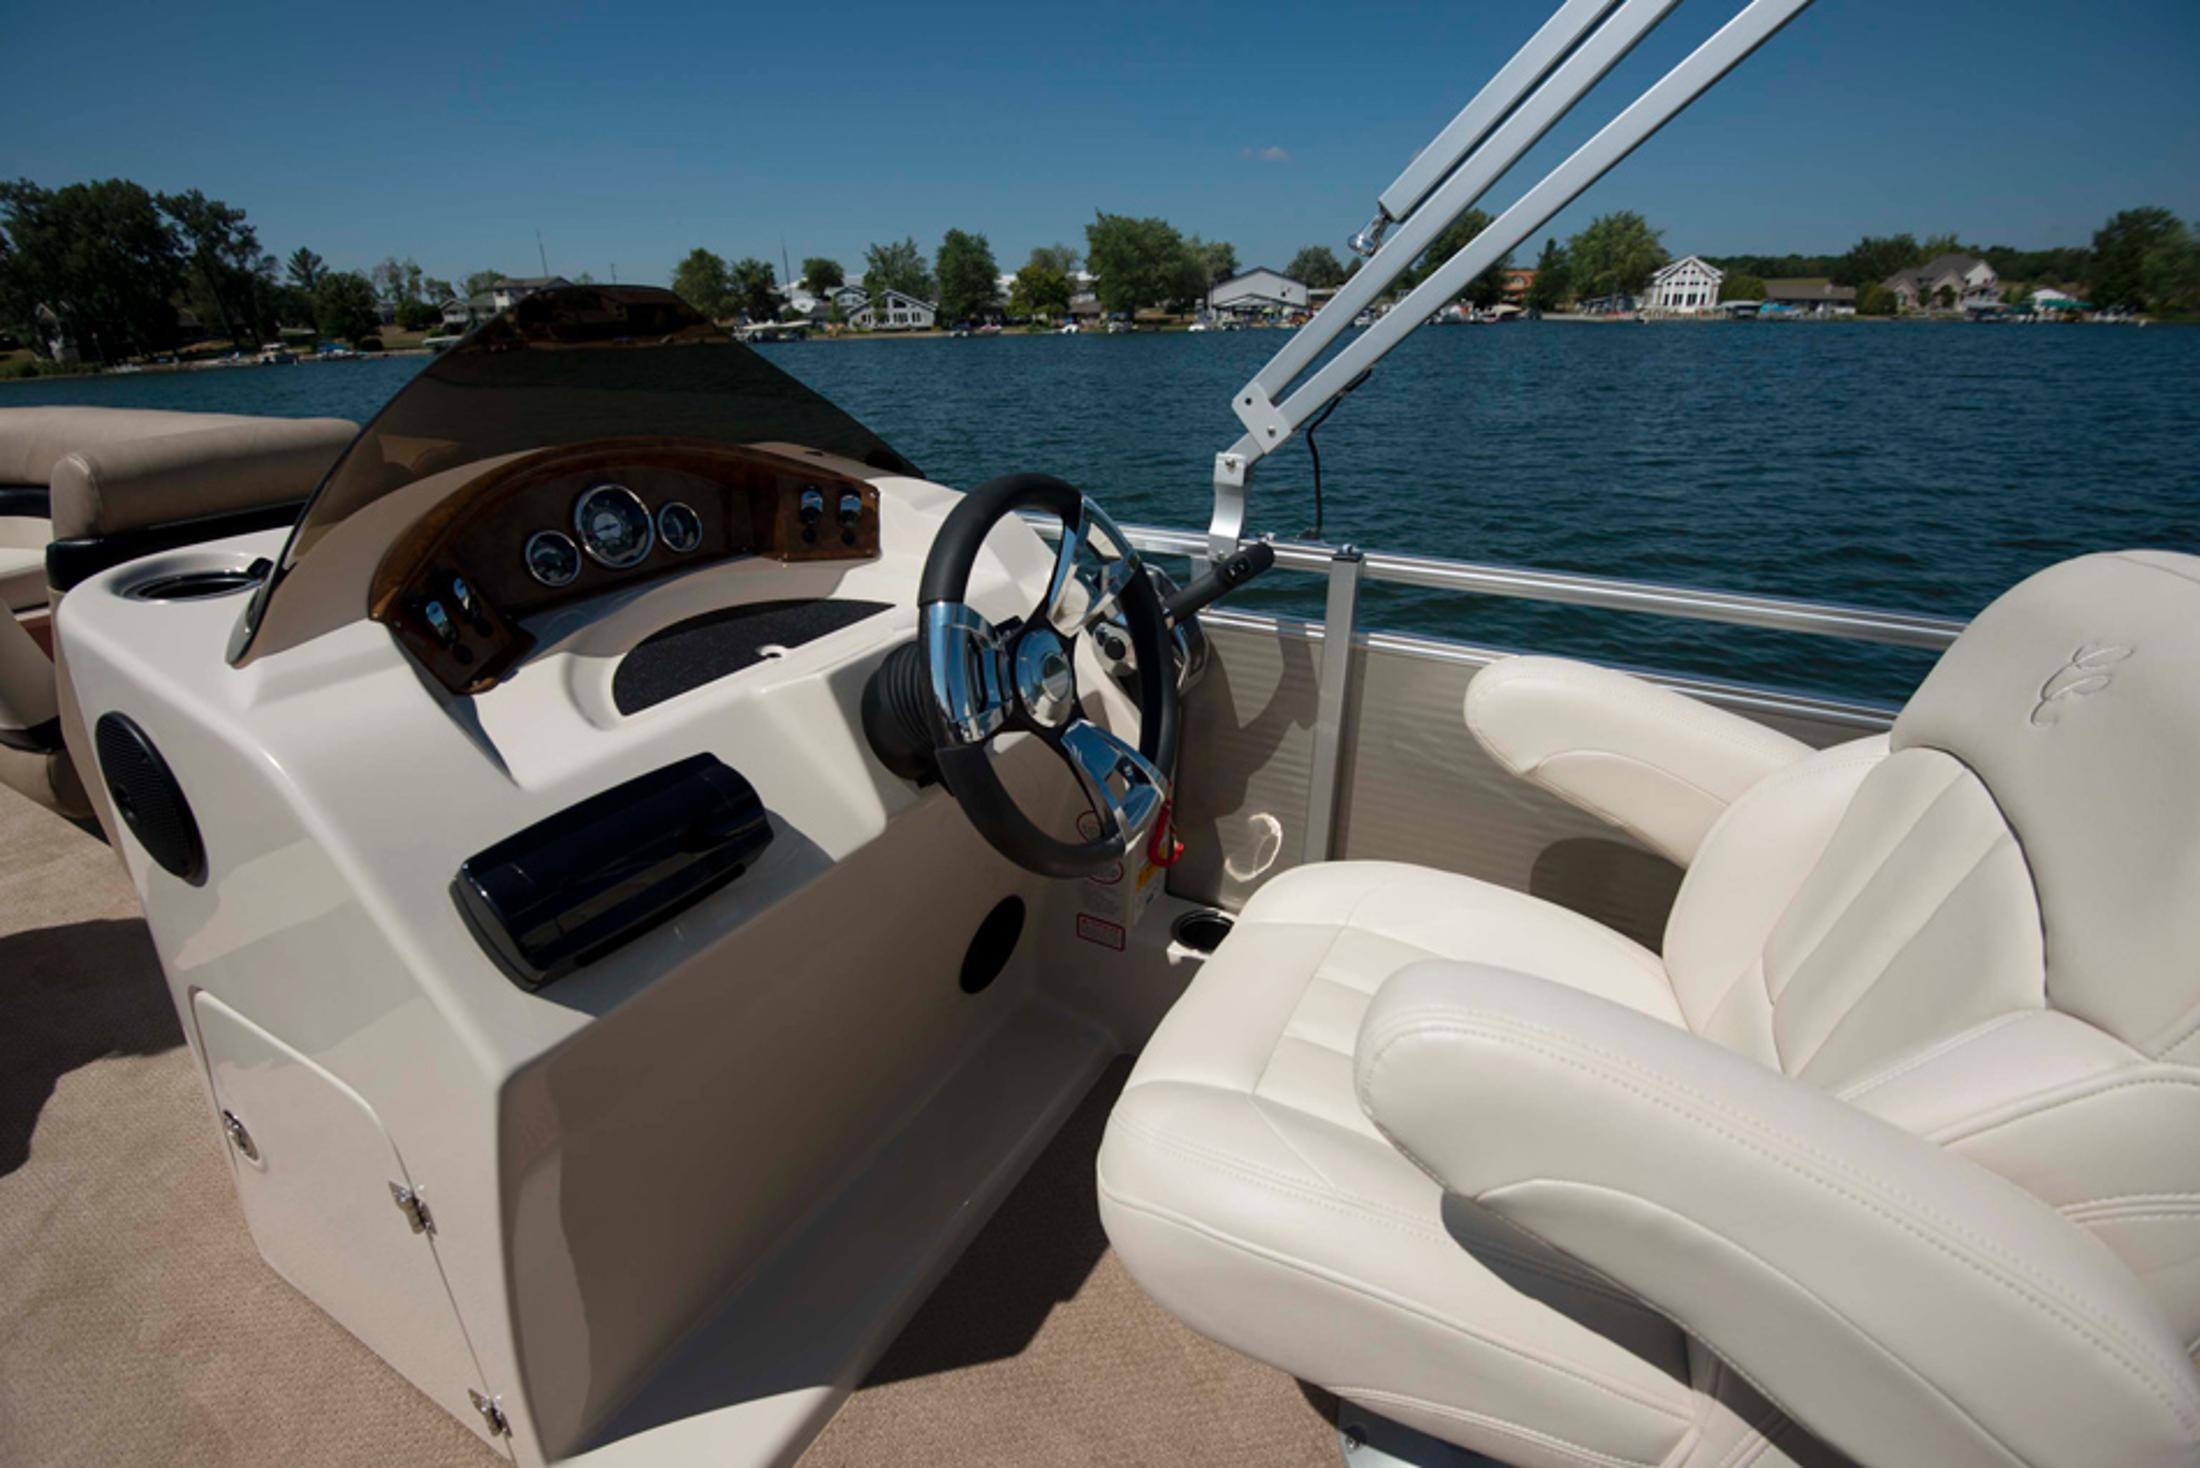 2013 Cypress Cay Seabreeze 250 in Manitou Beach, Michigan